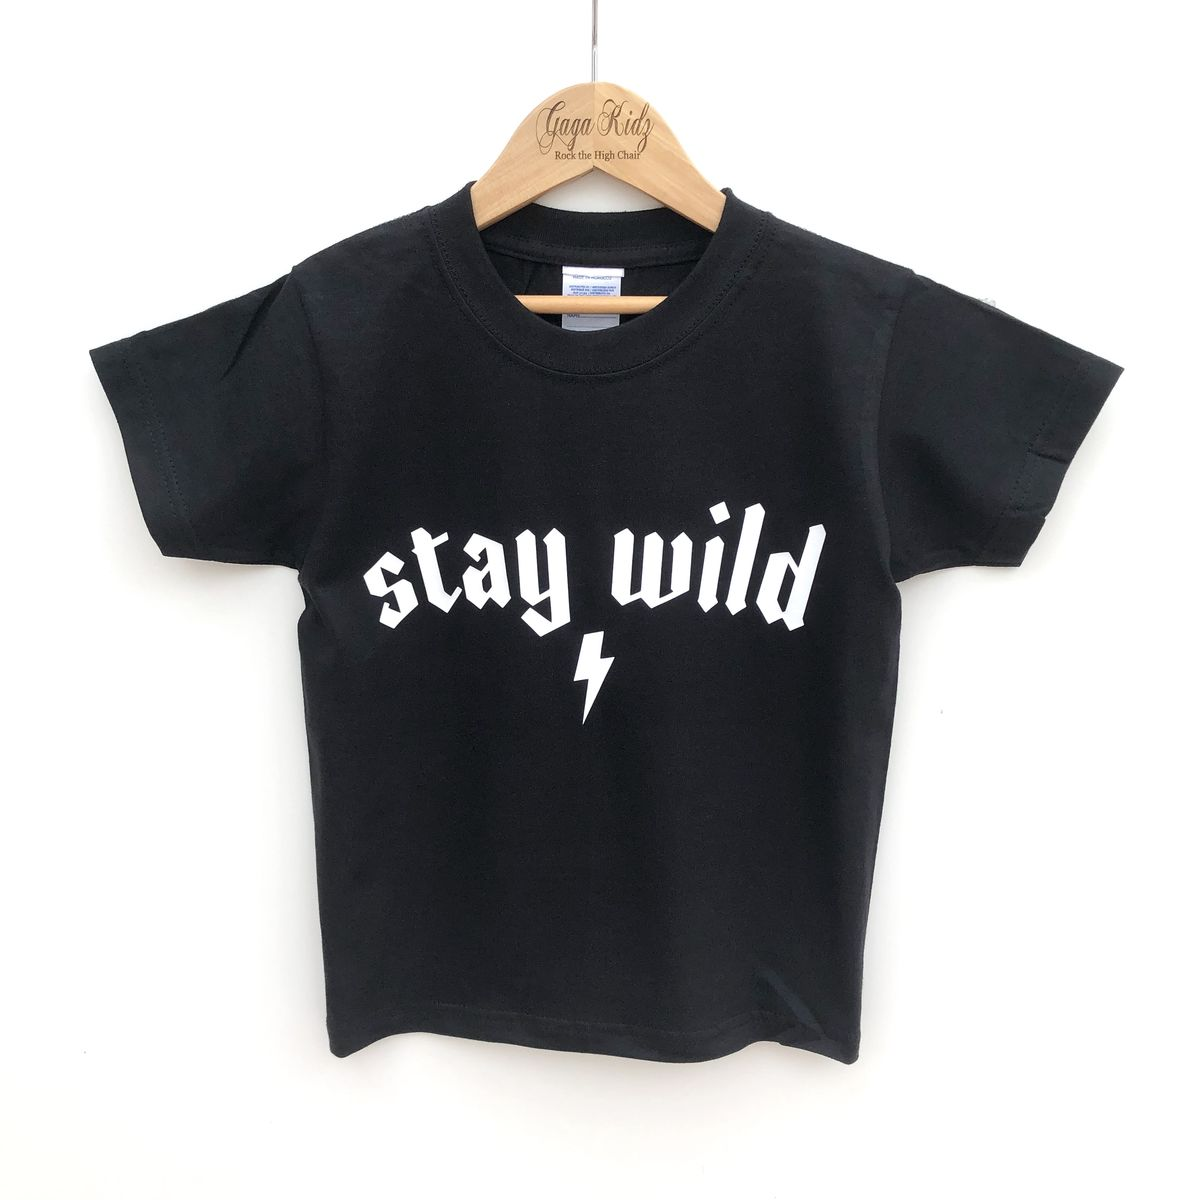 Stay Wild Black or White T-Shirt - product images  of